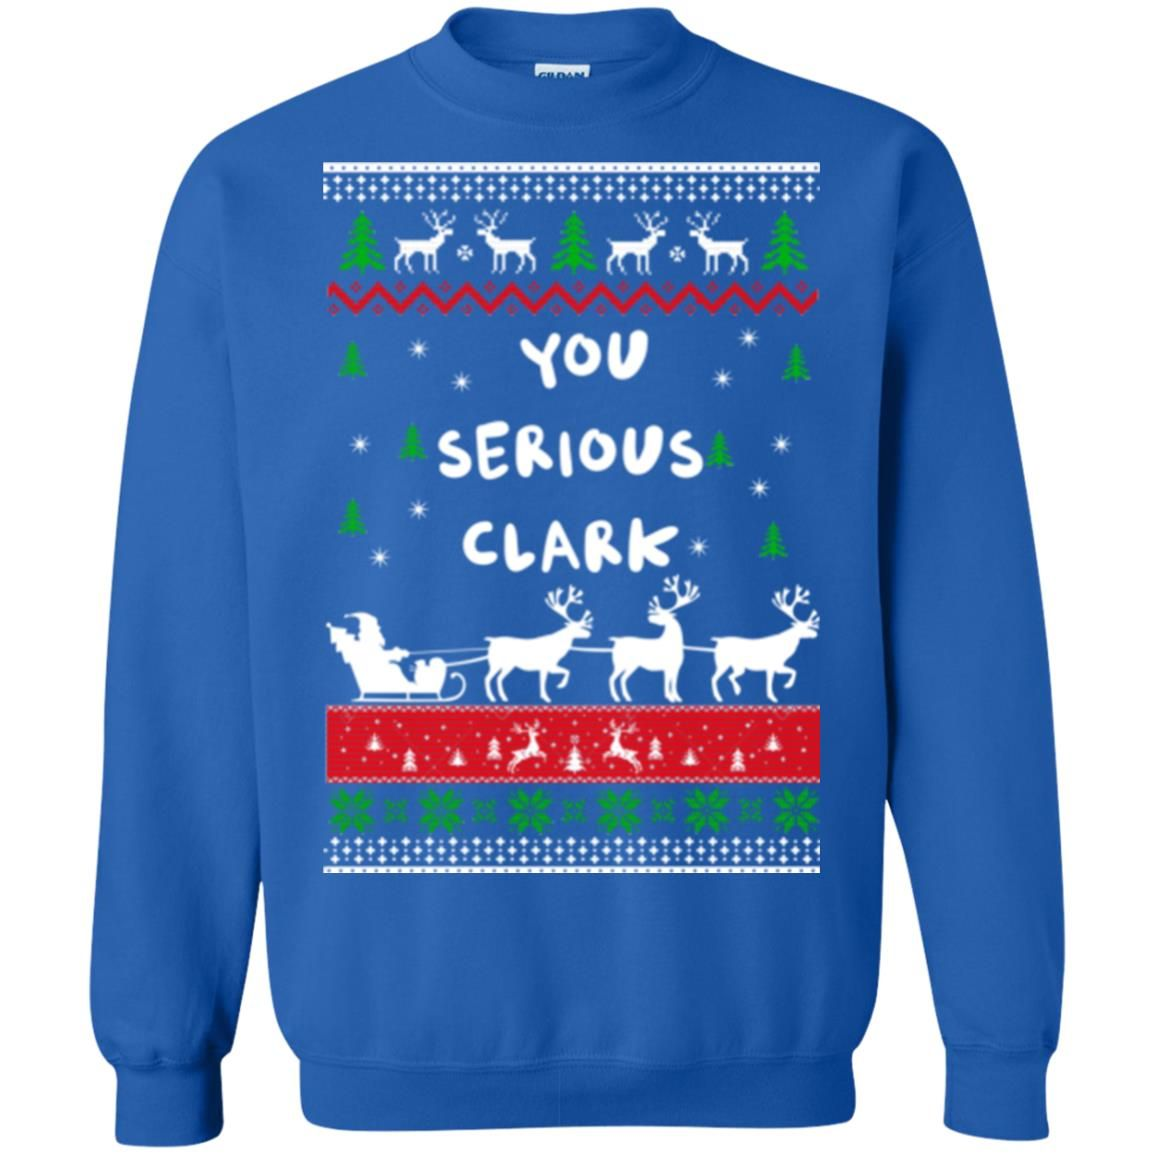 image 1727 - Christmas Vacation: You serious Clark sweater, t-shirt